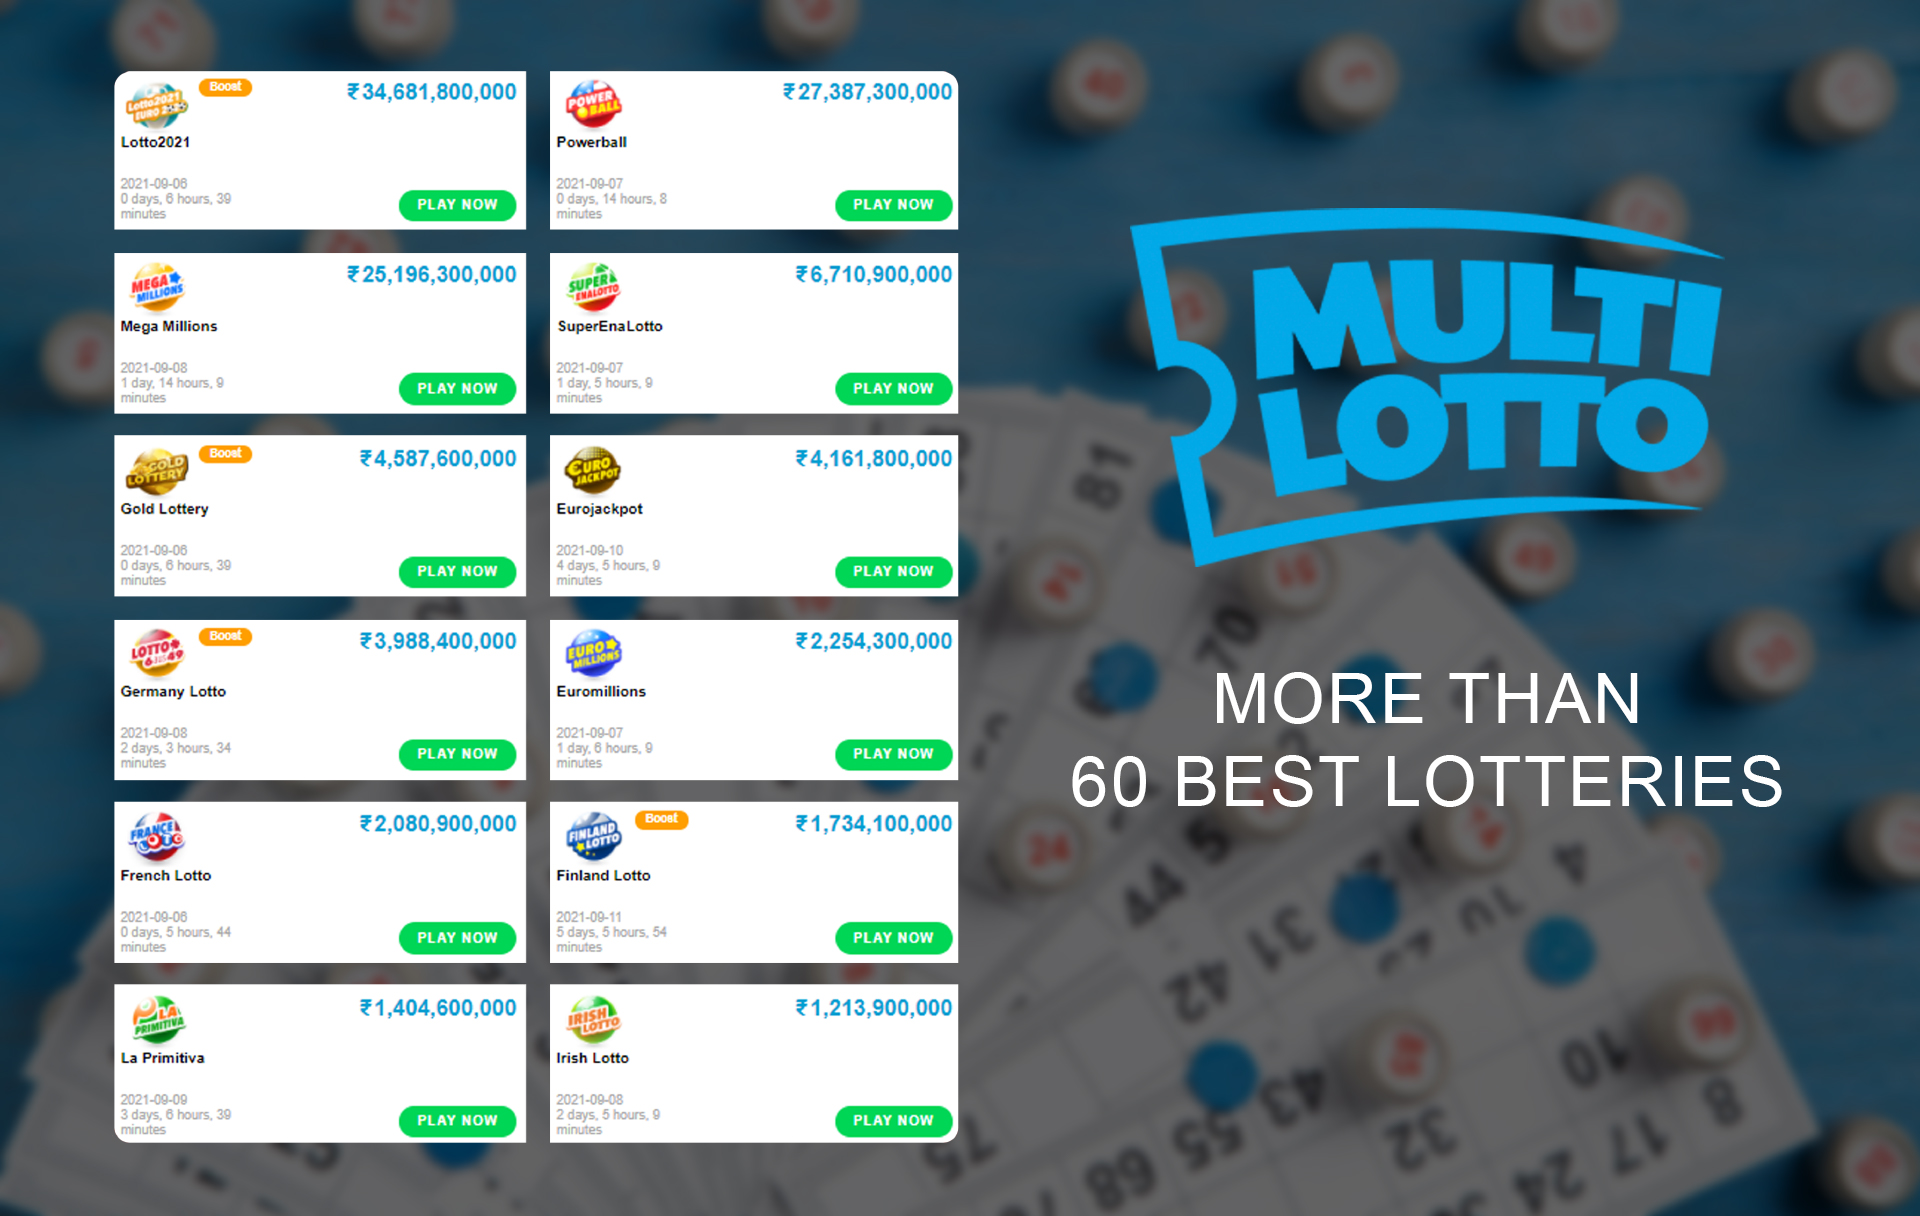 There are more than 60 international lotteries tickets you can buy on MultiLotto.